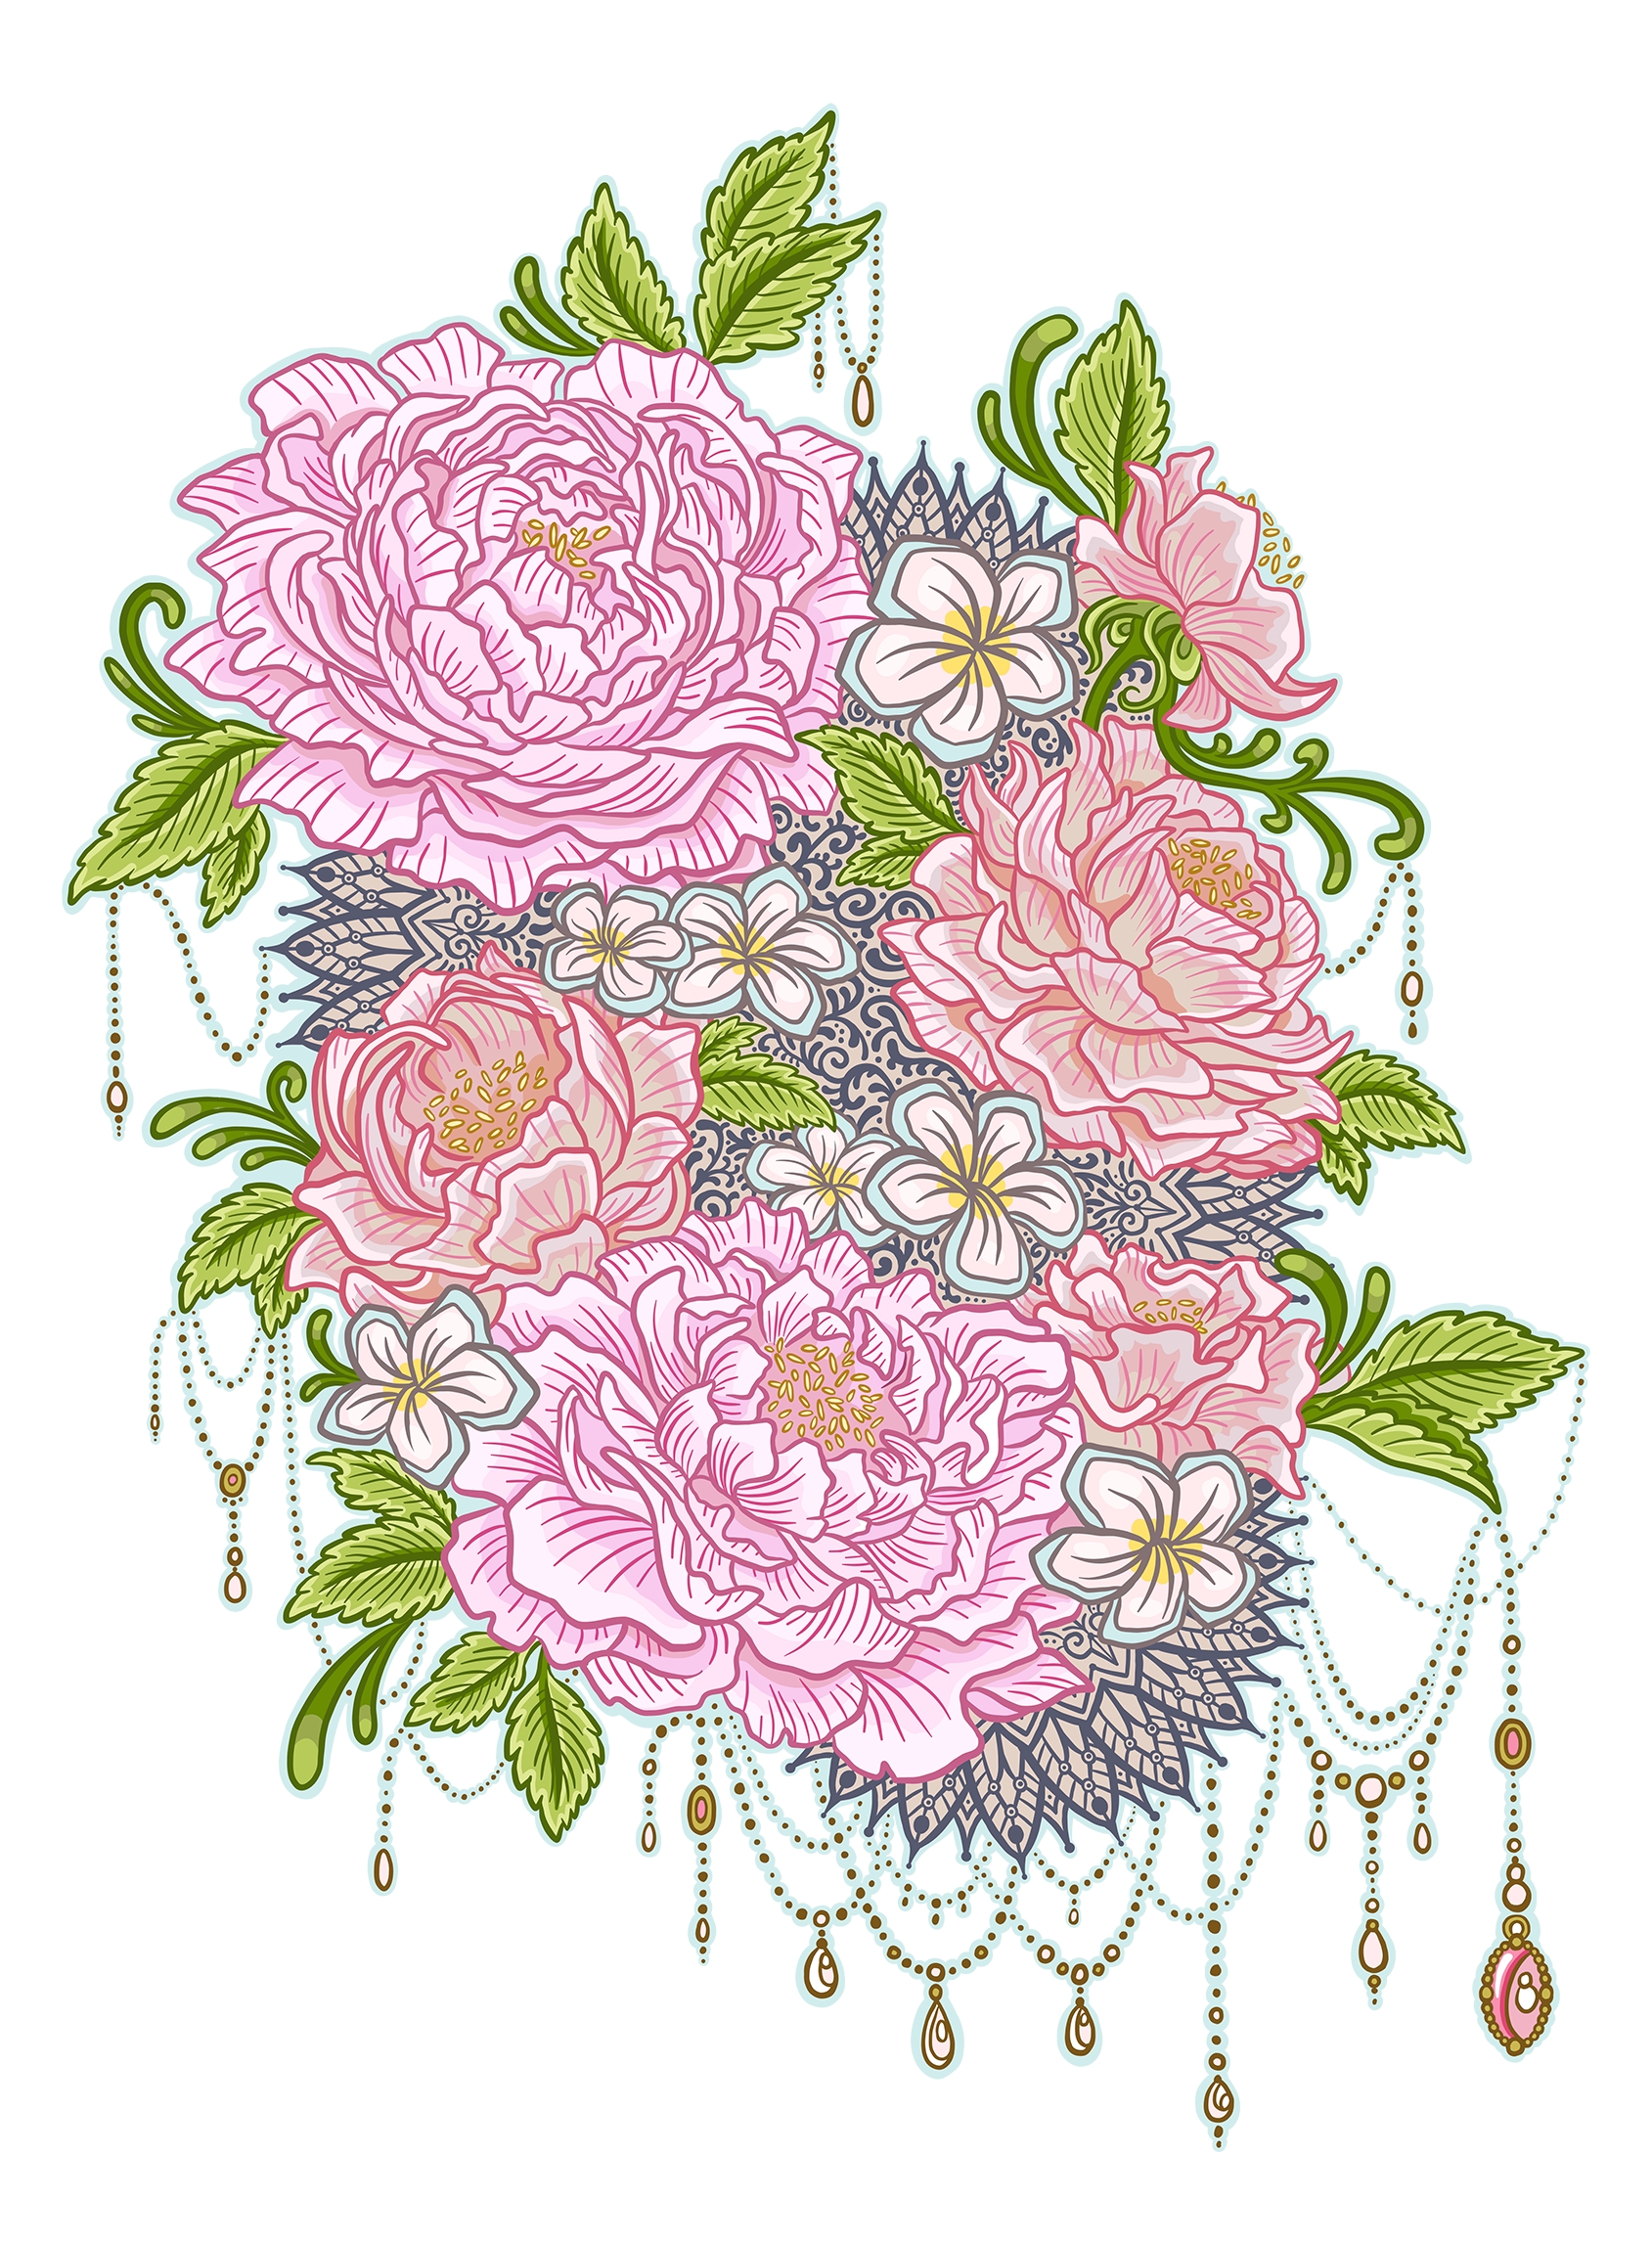 Bold Floral Pink Peony and jewels Girly Cartoon Illustration Logo Graphic by Jessica Laine Morris